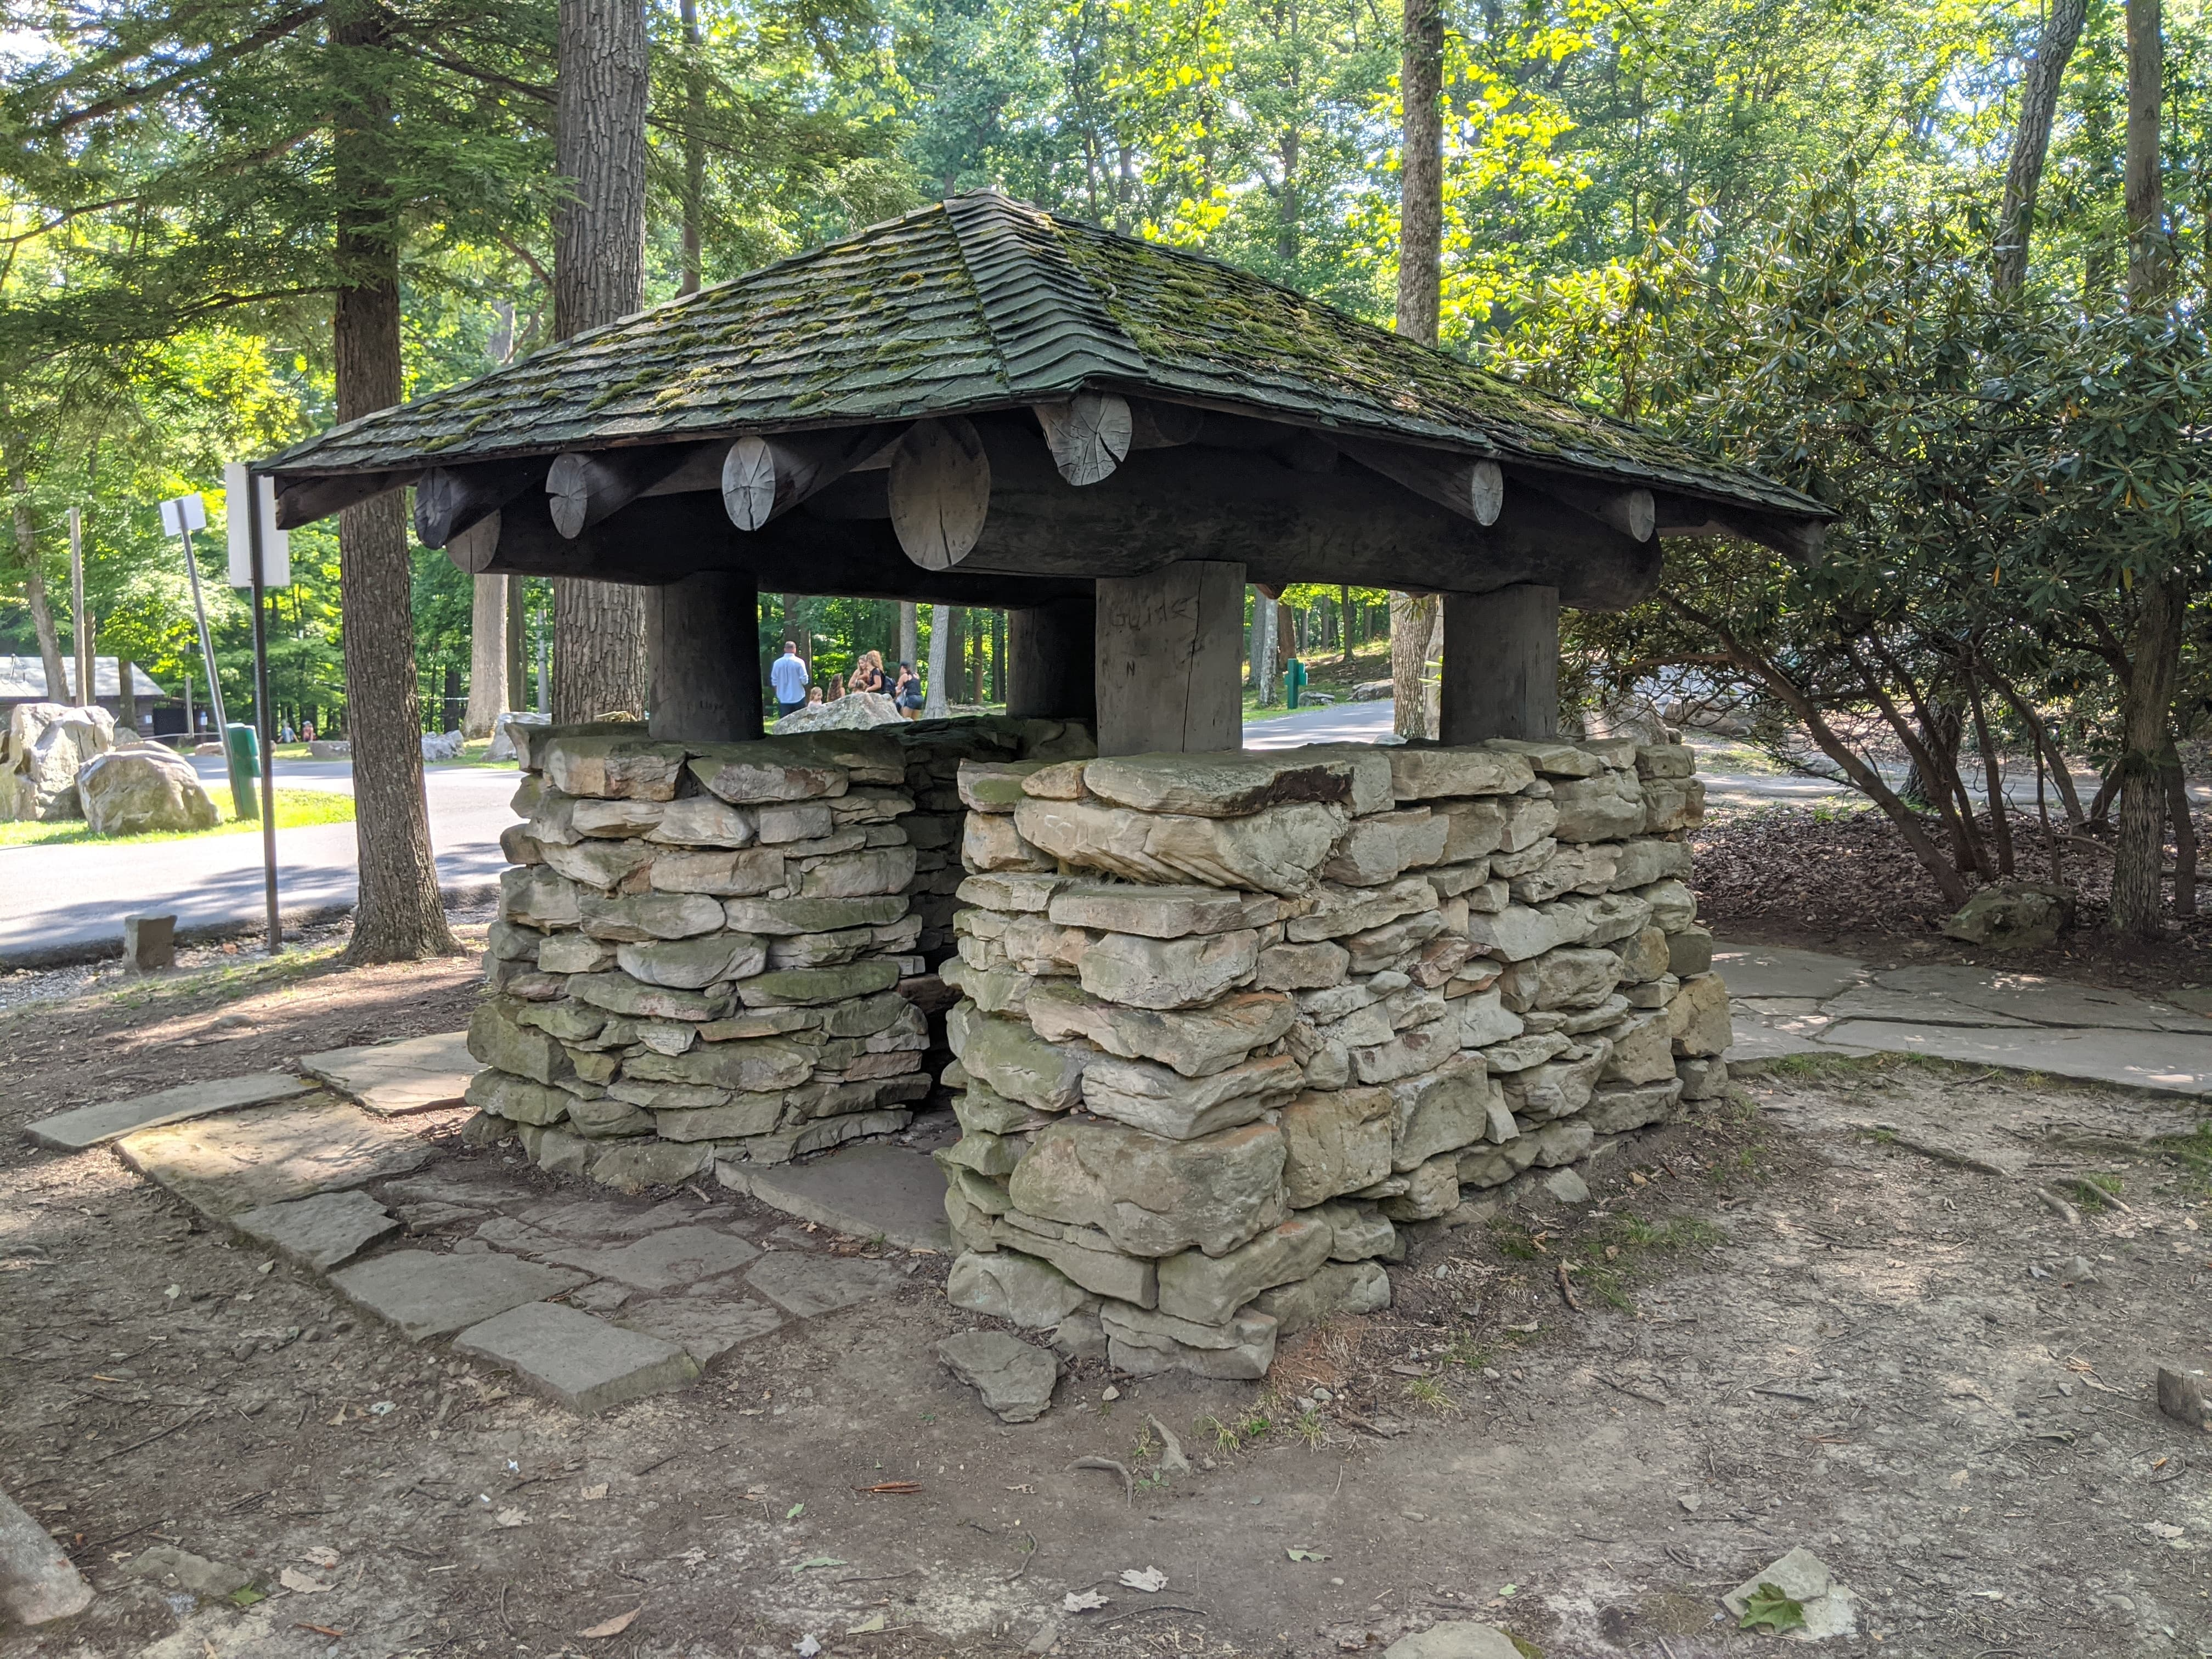 Rear of the information booth